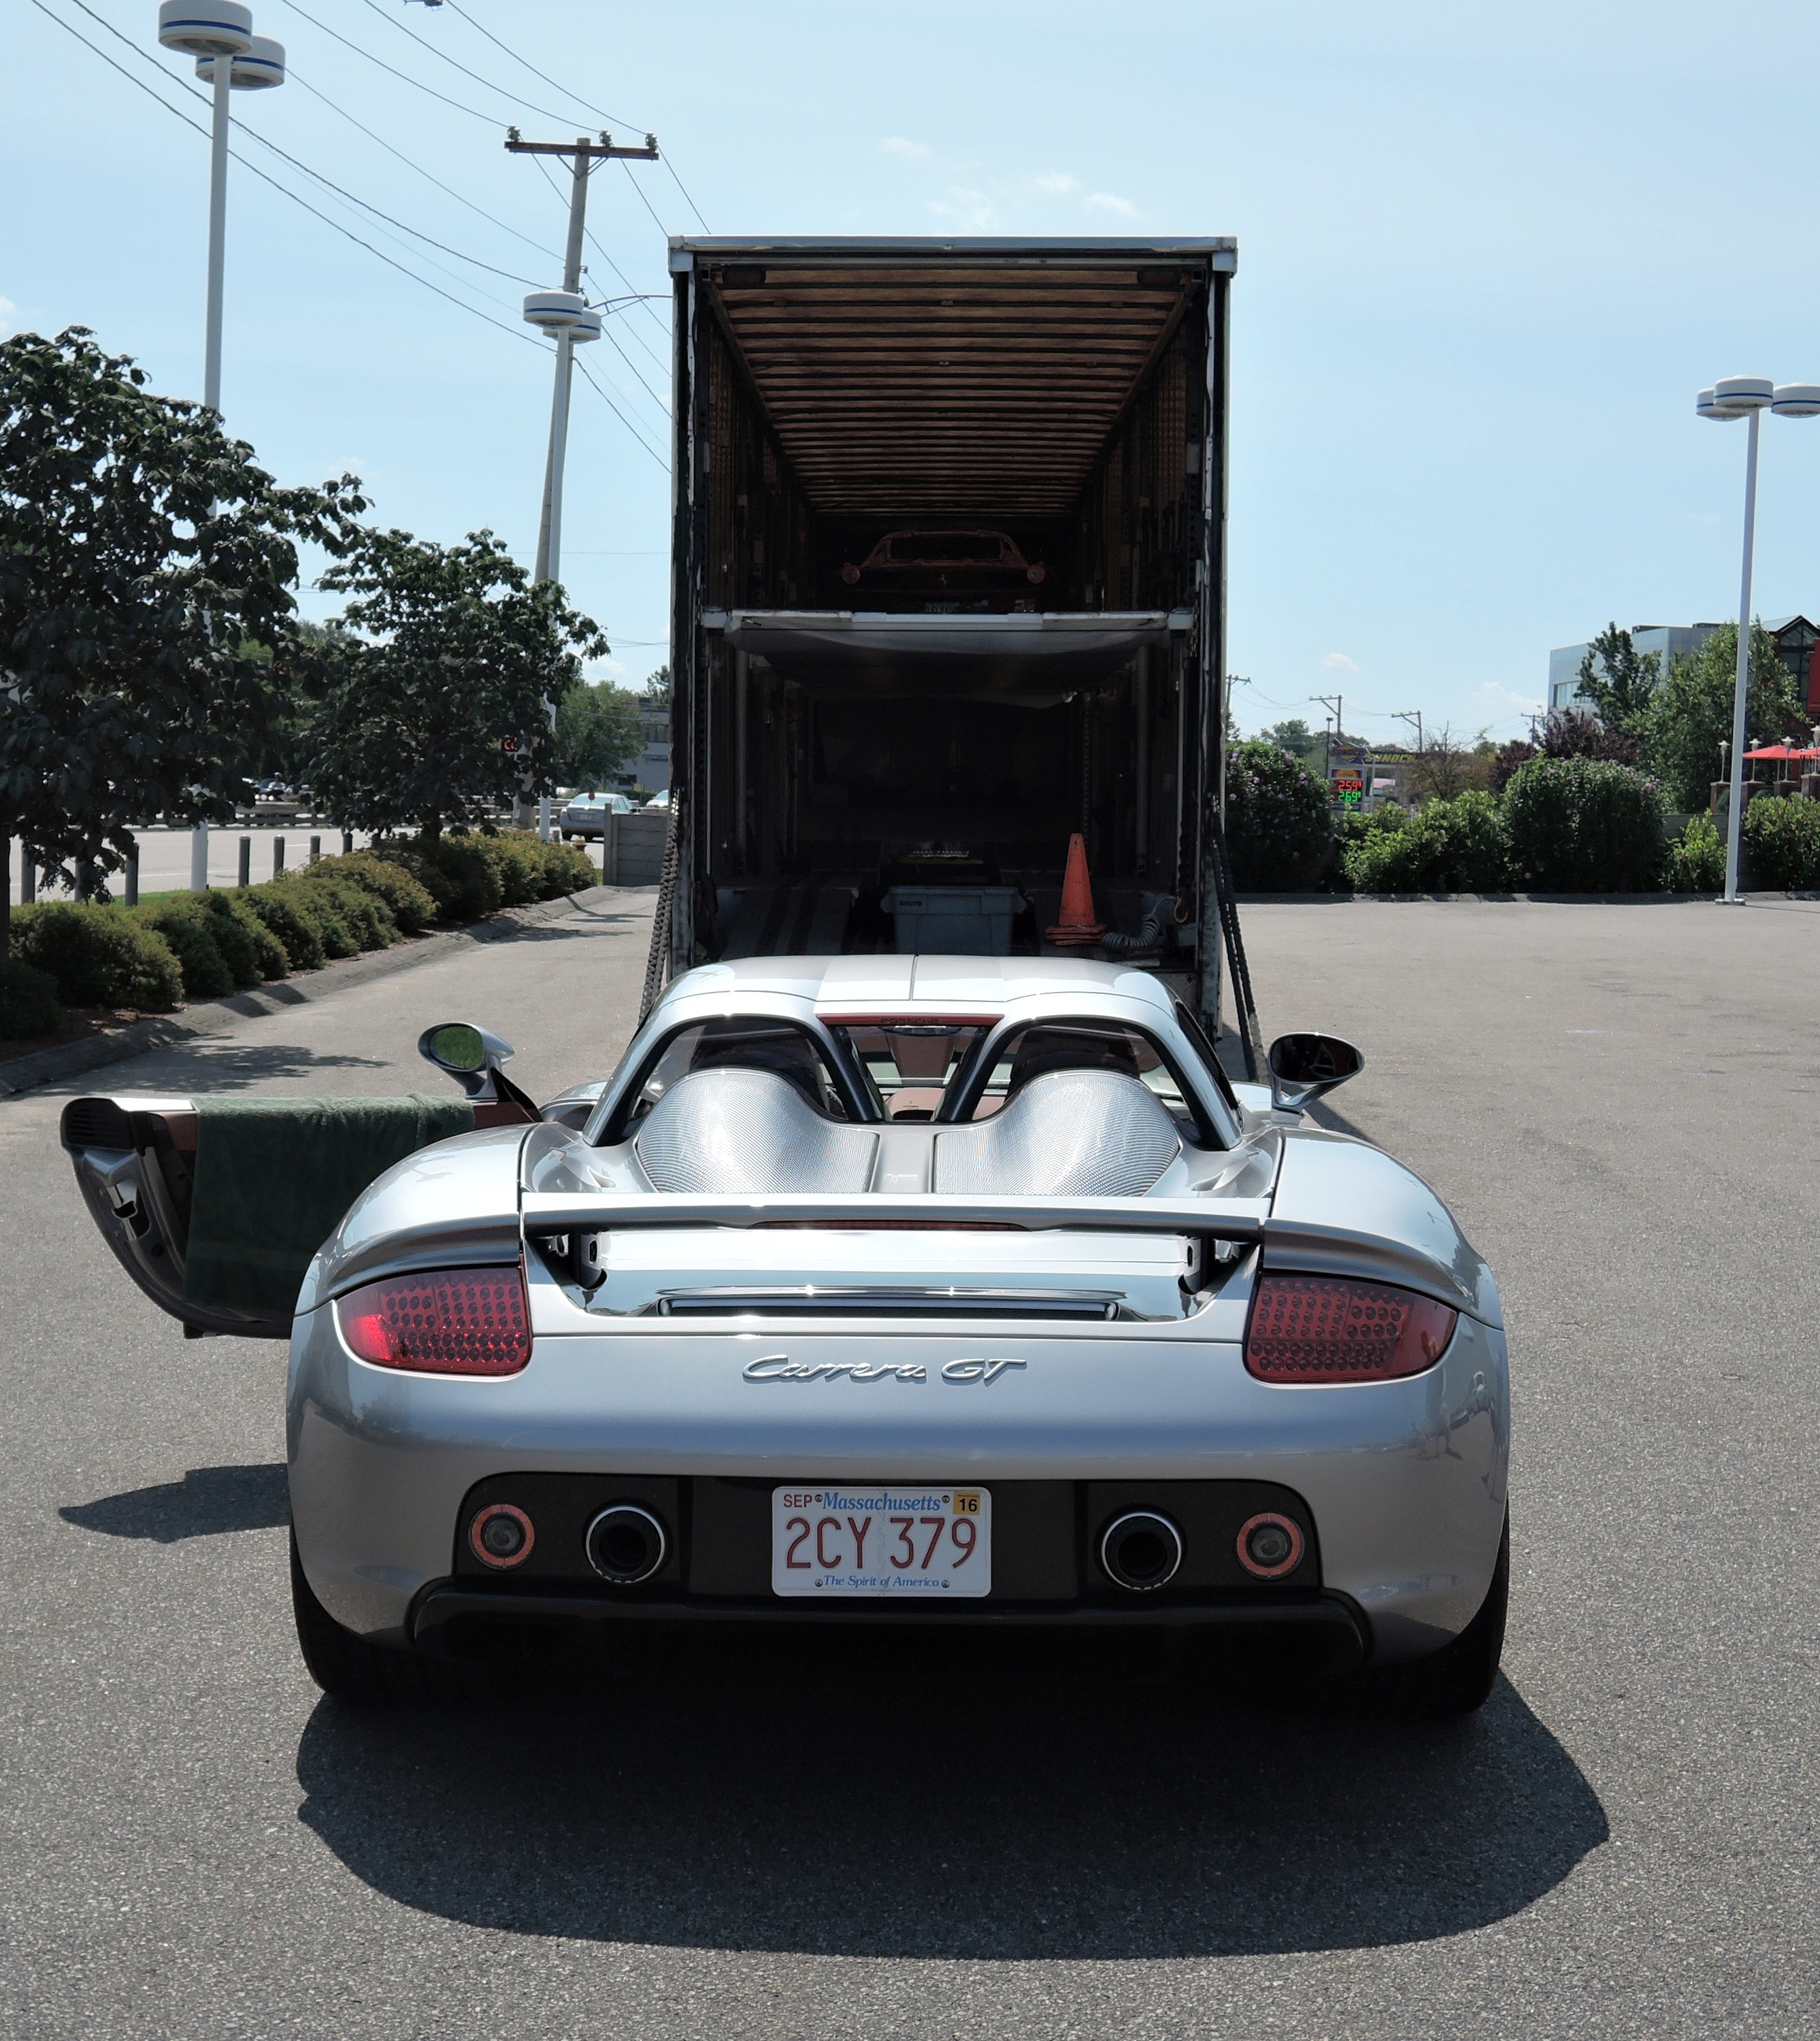 silver Porsche Carrera GT - monterey car week